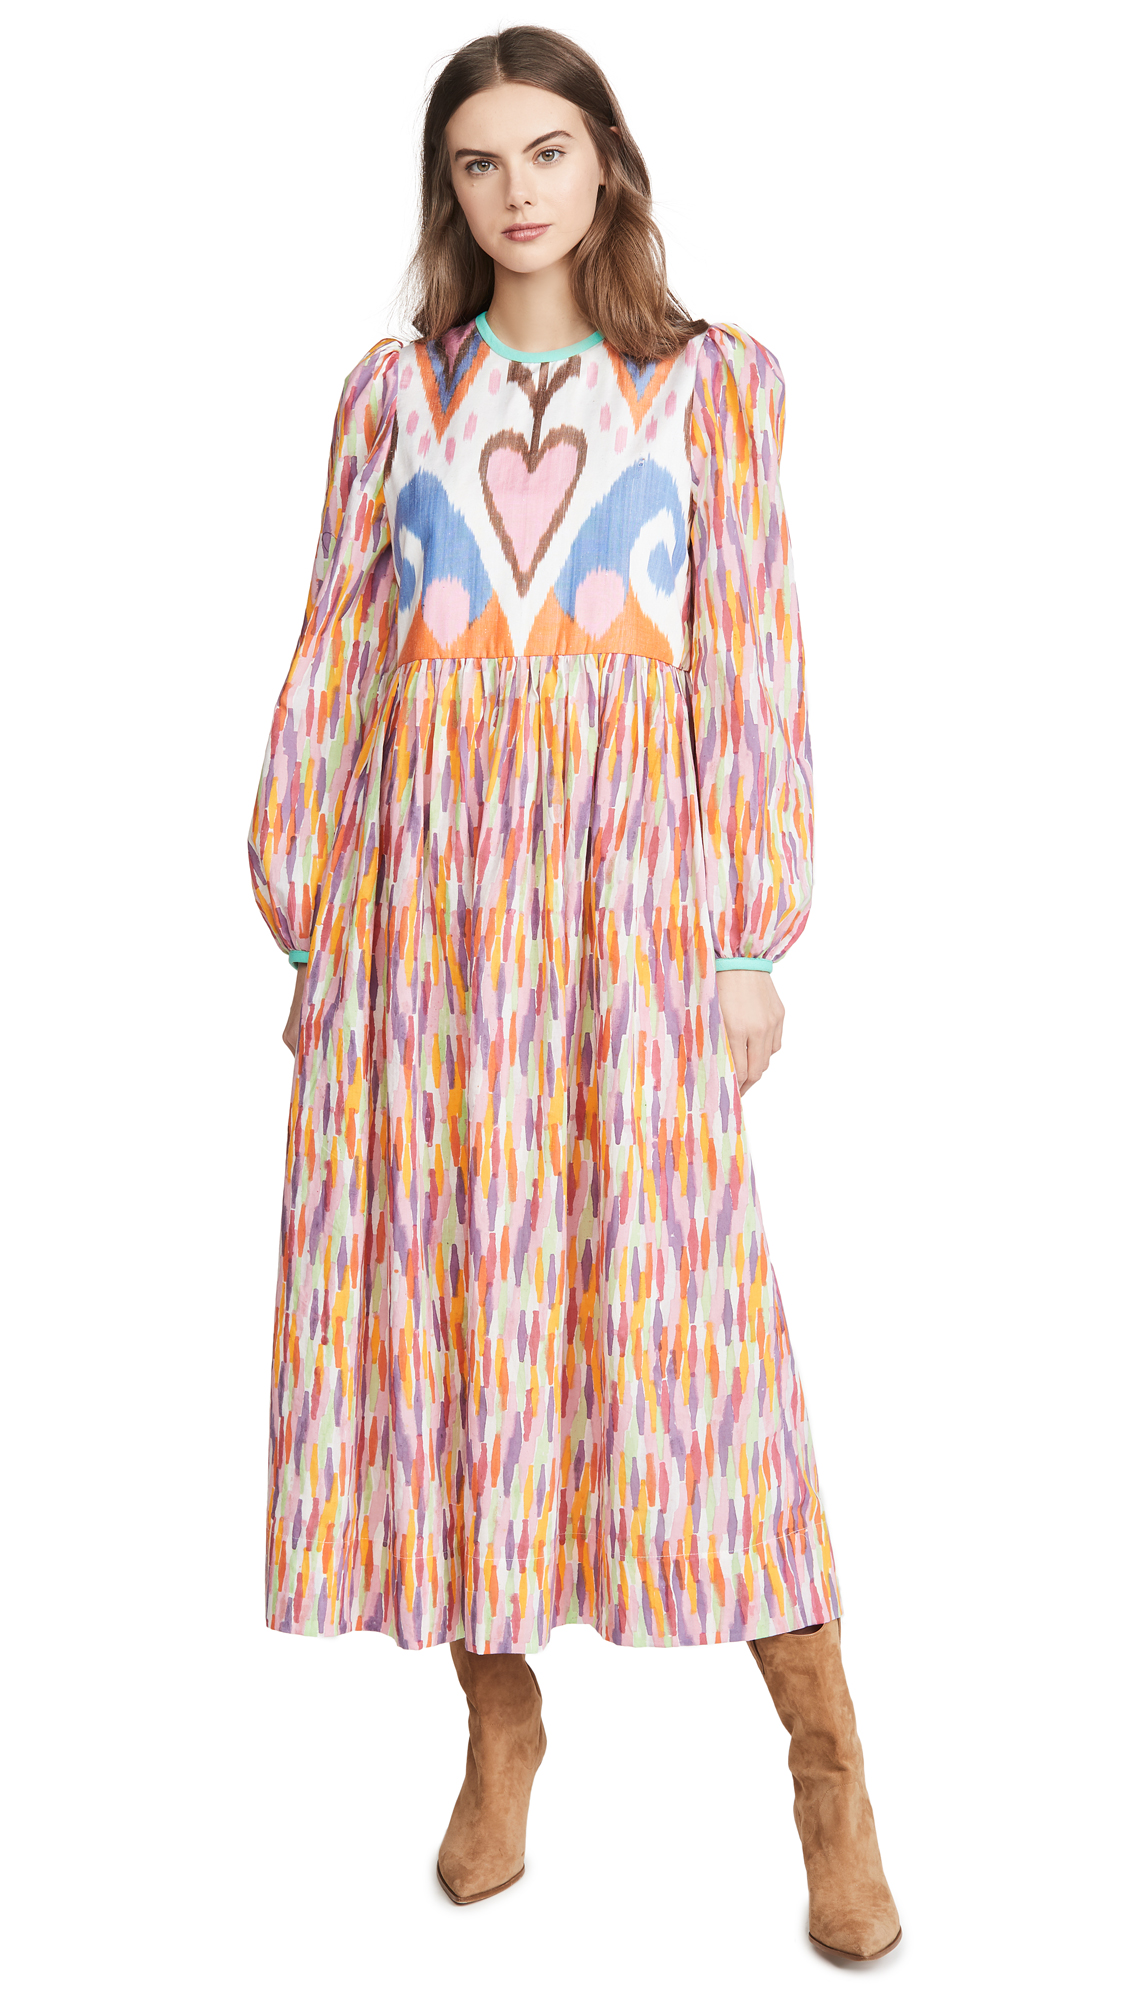 Alix of Bohemia Tallulah Rainbow Ikat Dress - 40% Off Sale